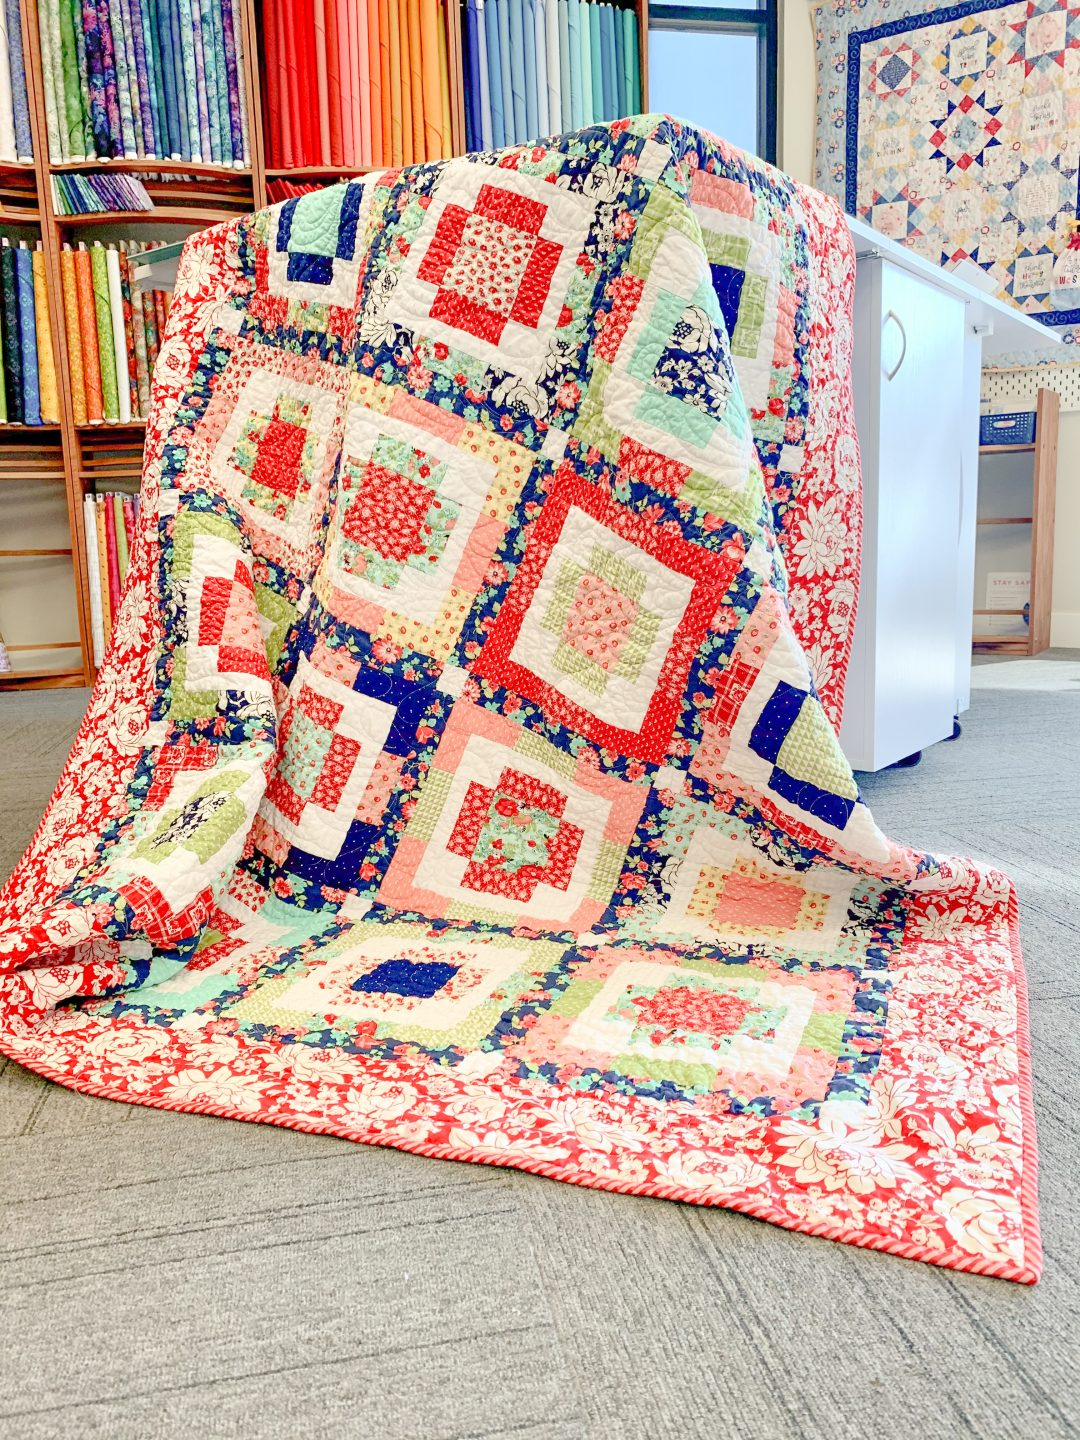 Rise & Shine Quilt from Playful Precut Quilts